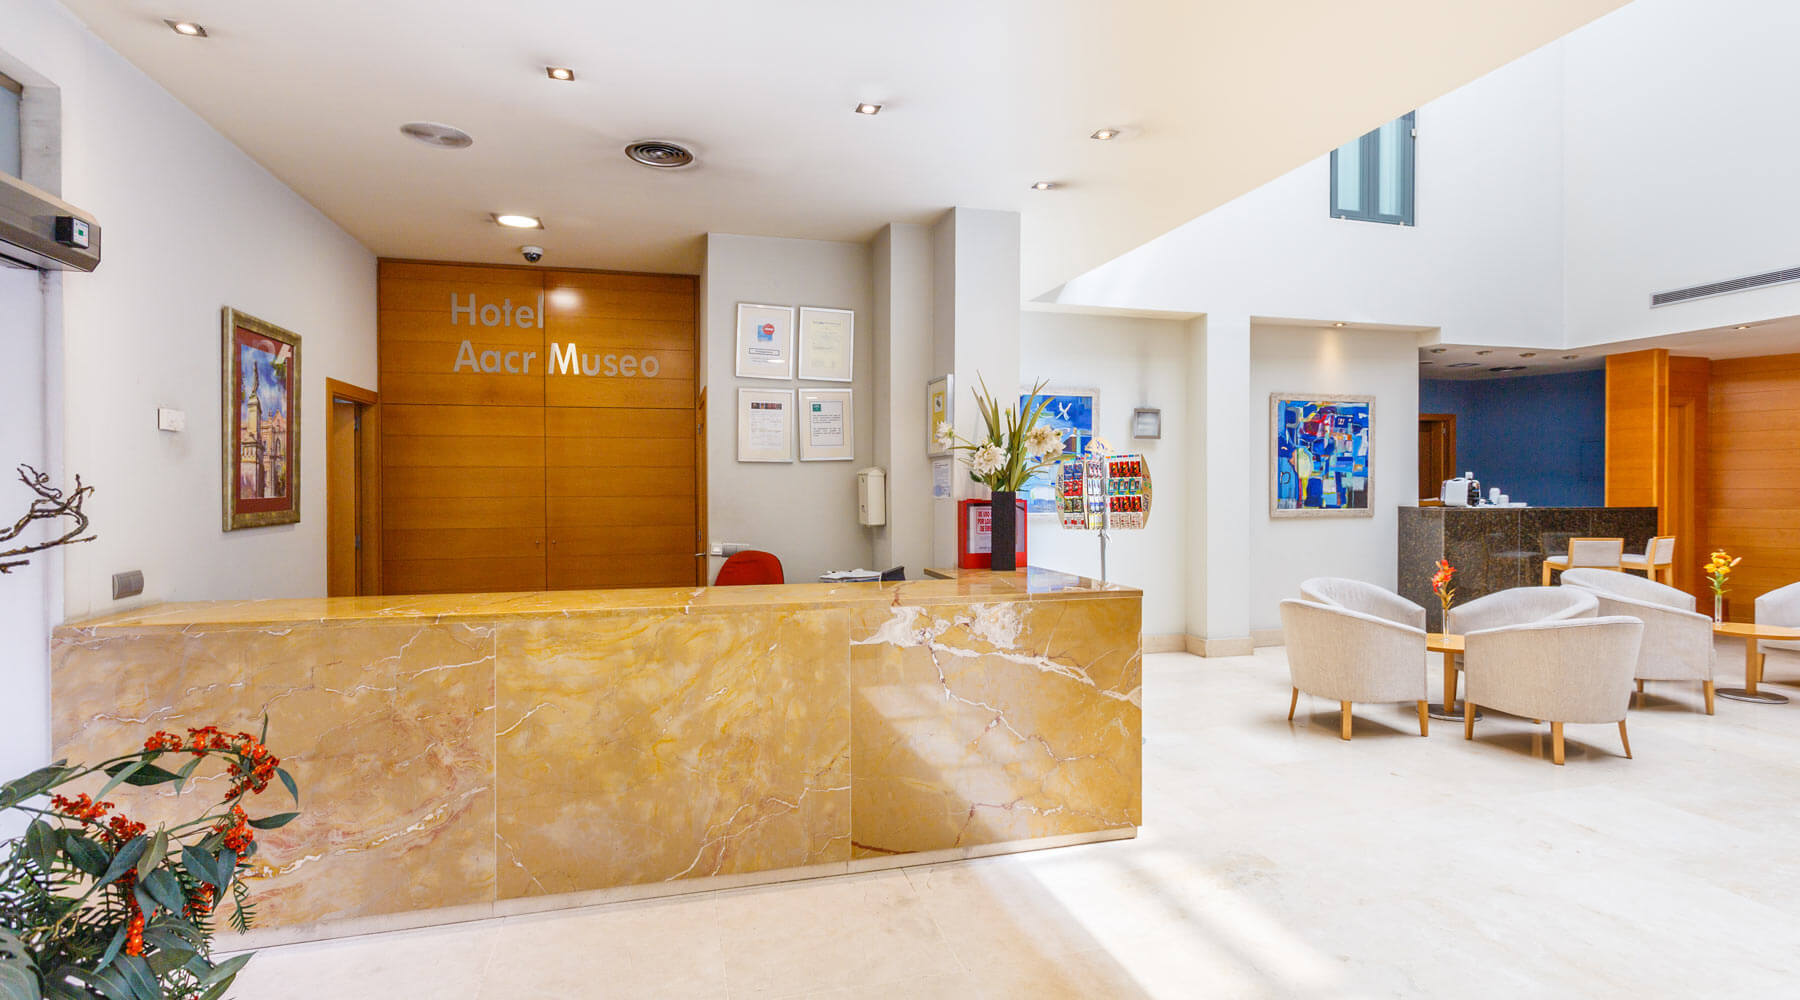 Museo.Hotel Aacr Museo Seville Official Website